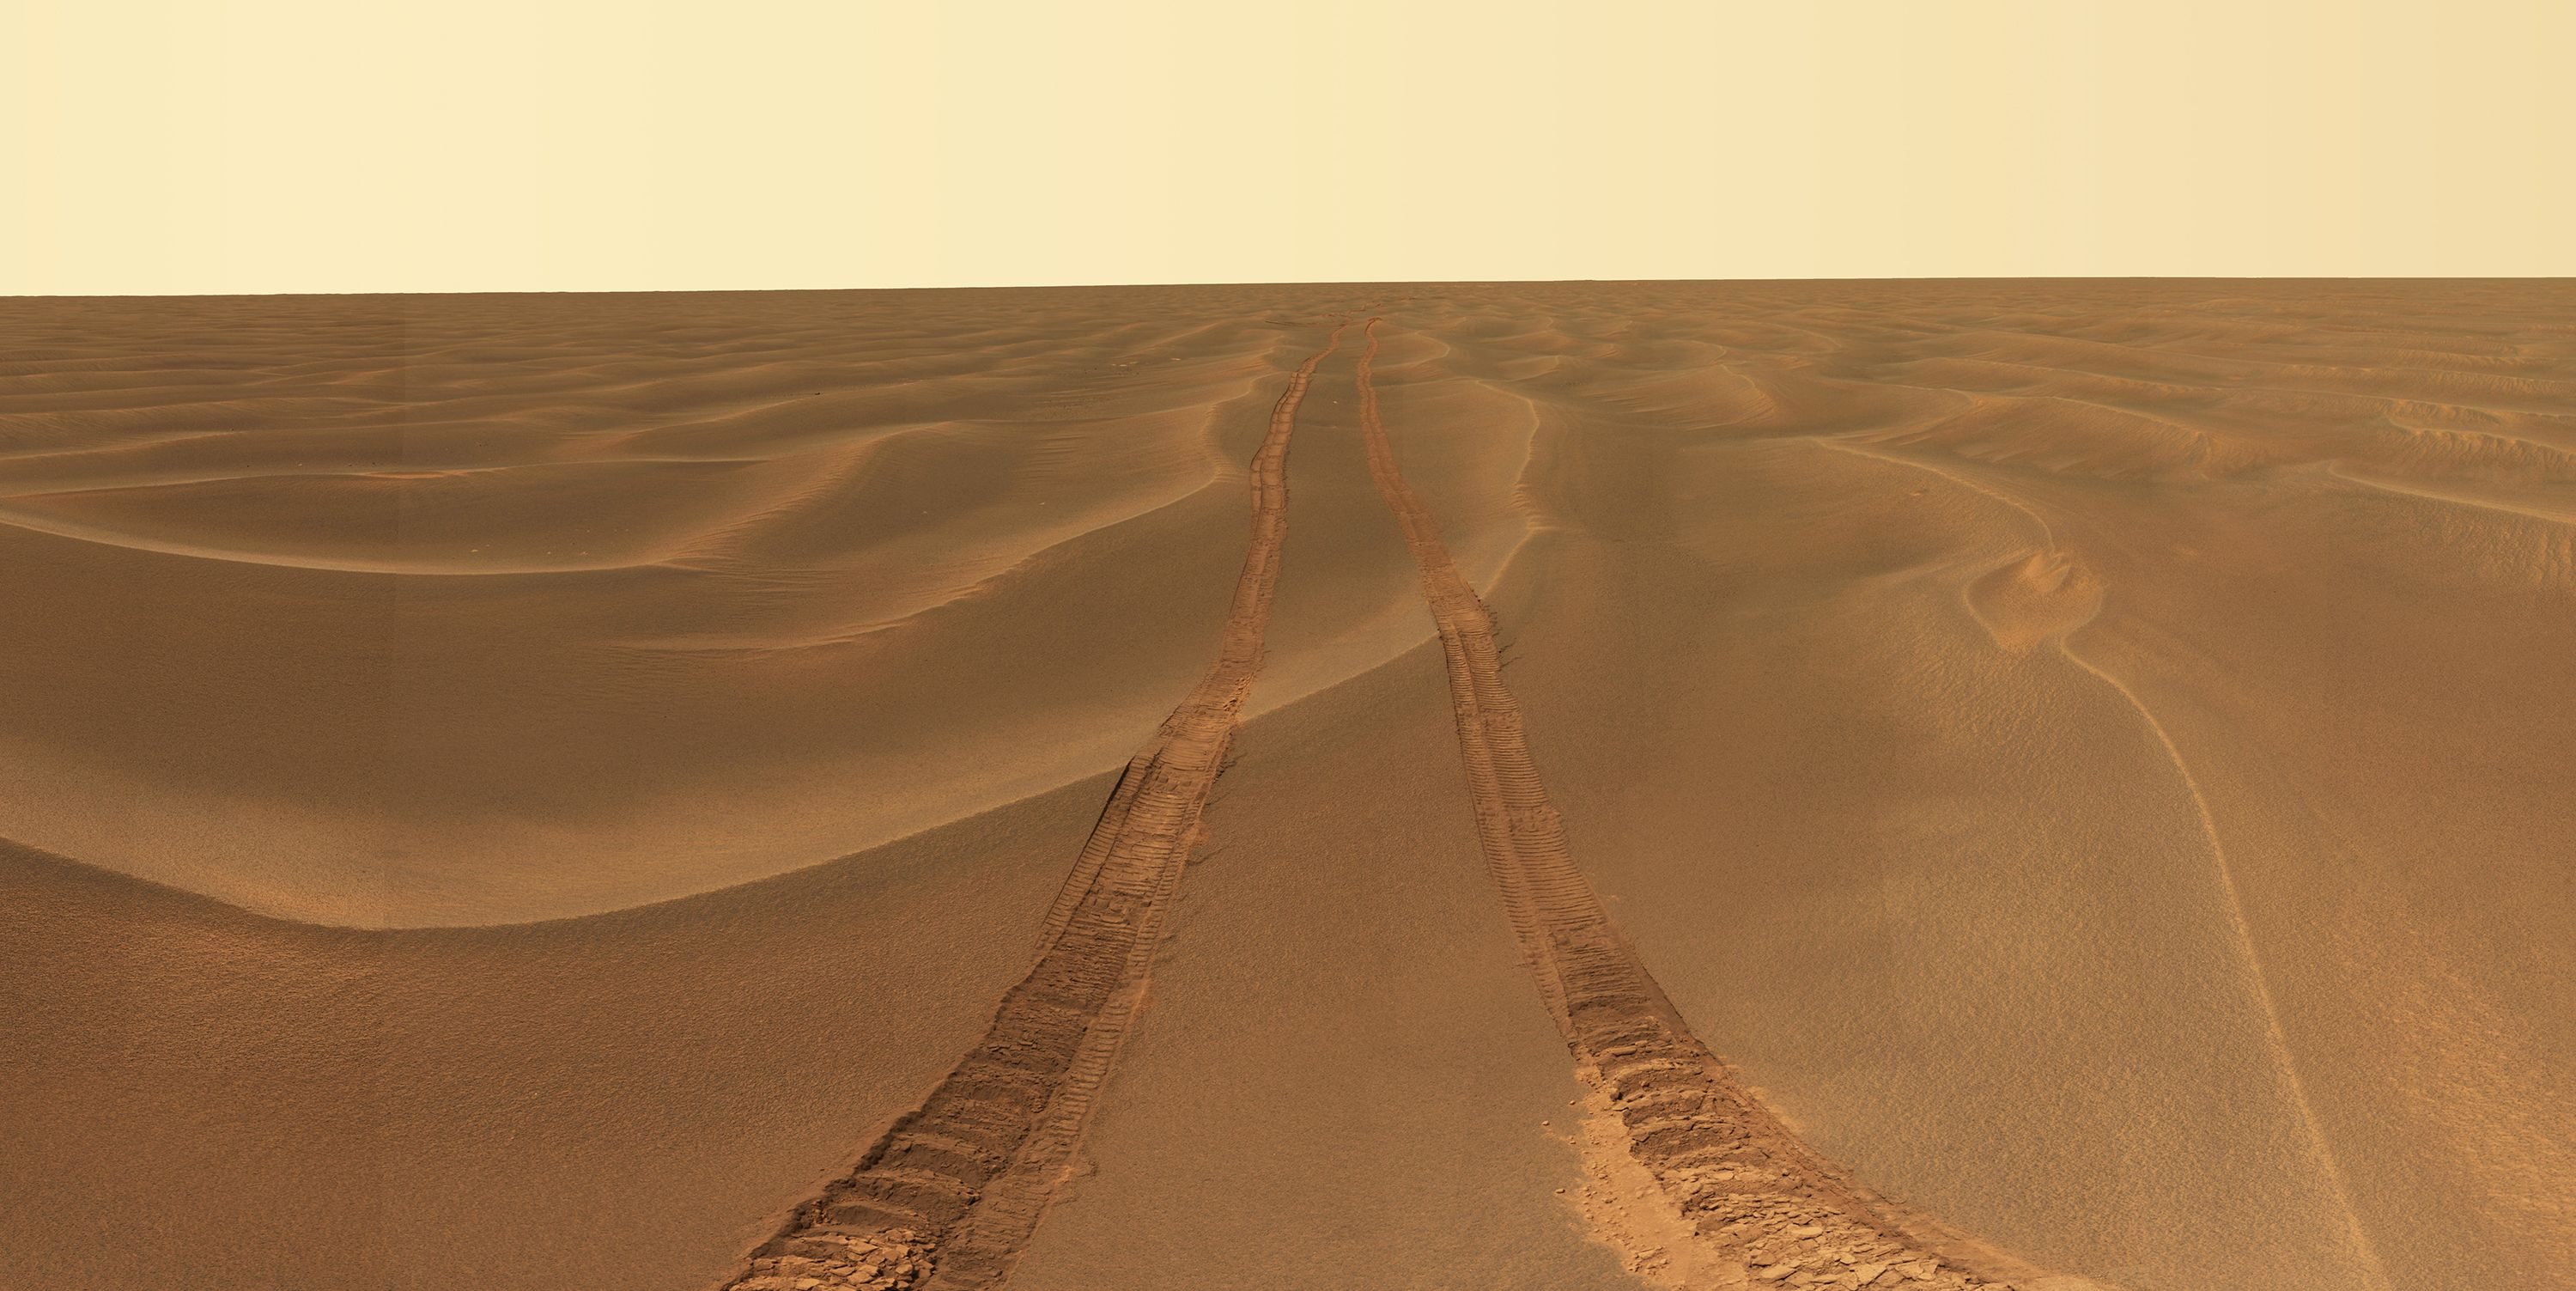 opportunity rover tracks